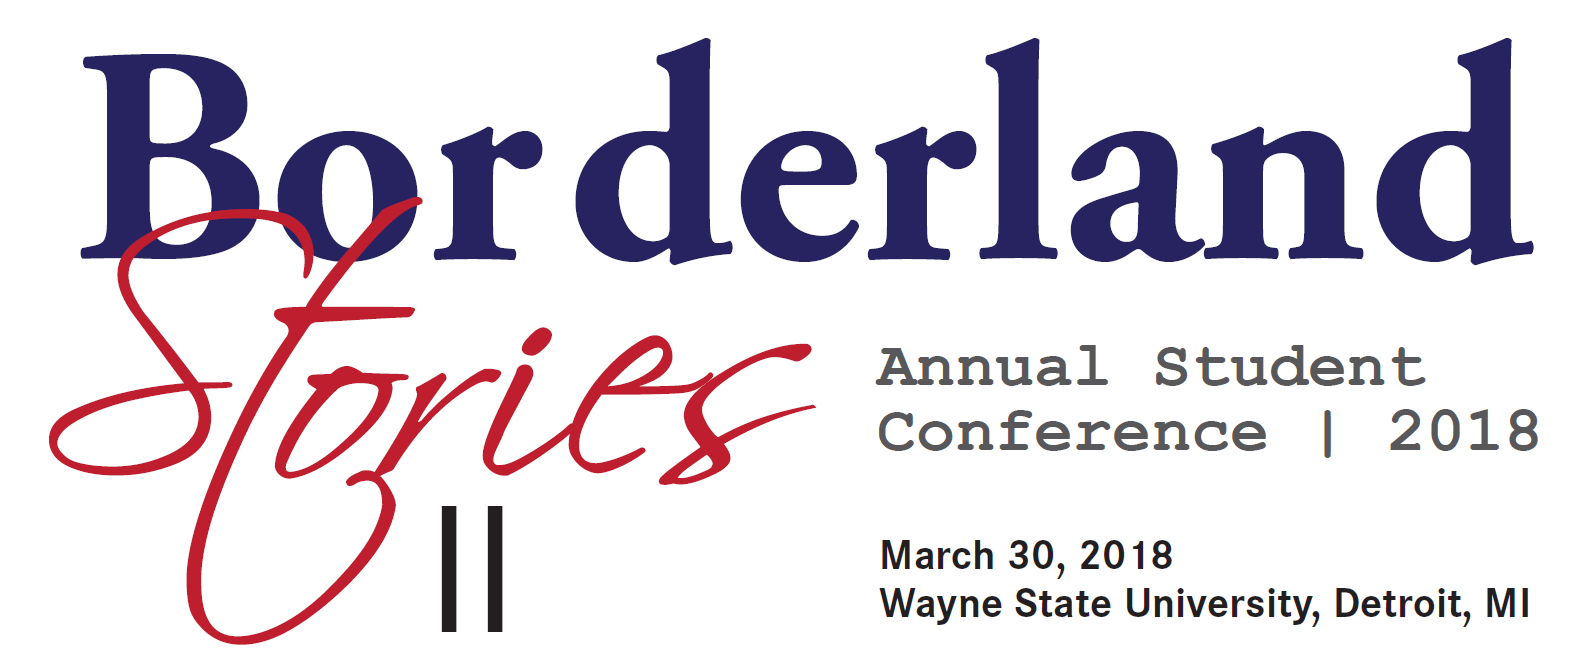 Borderland Stories Conference 2018